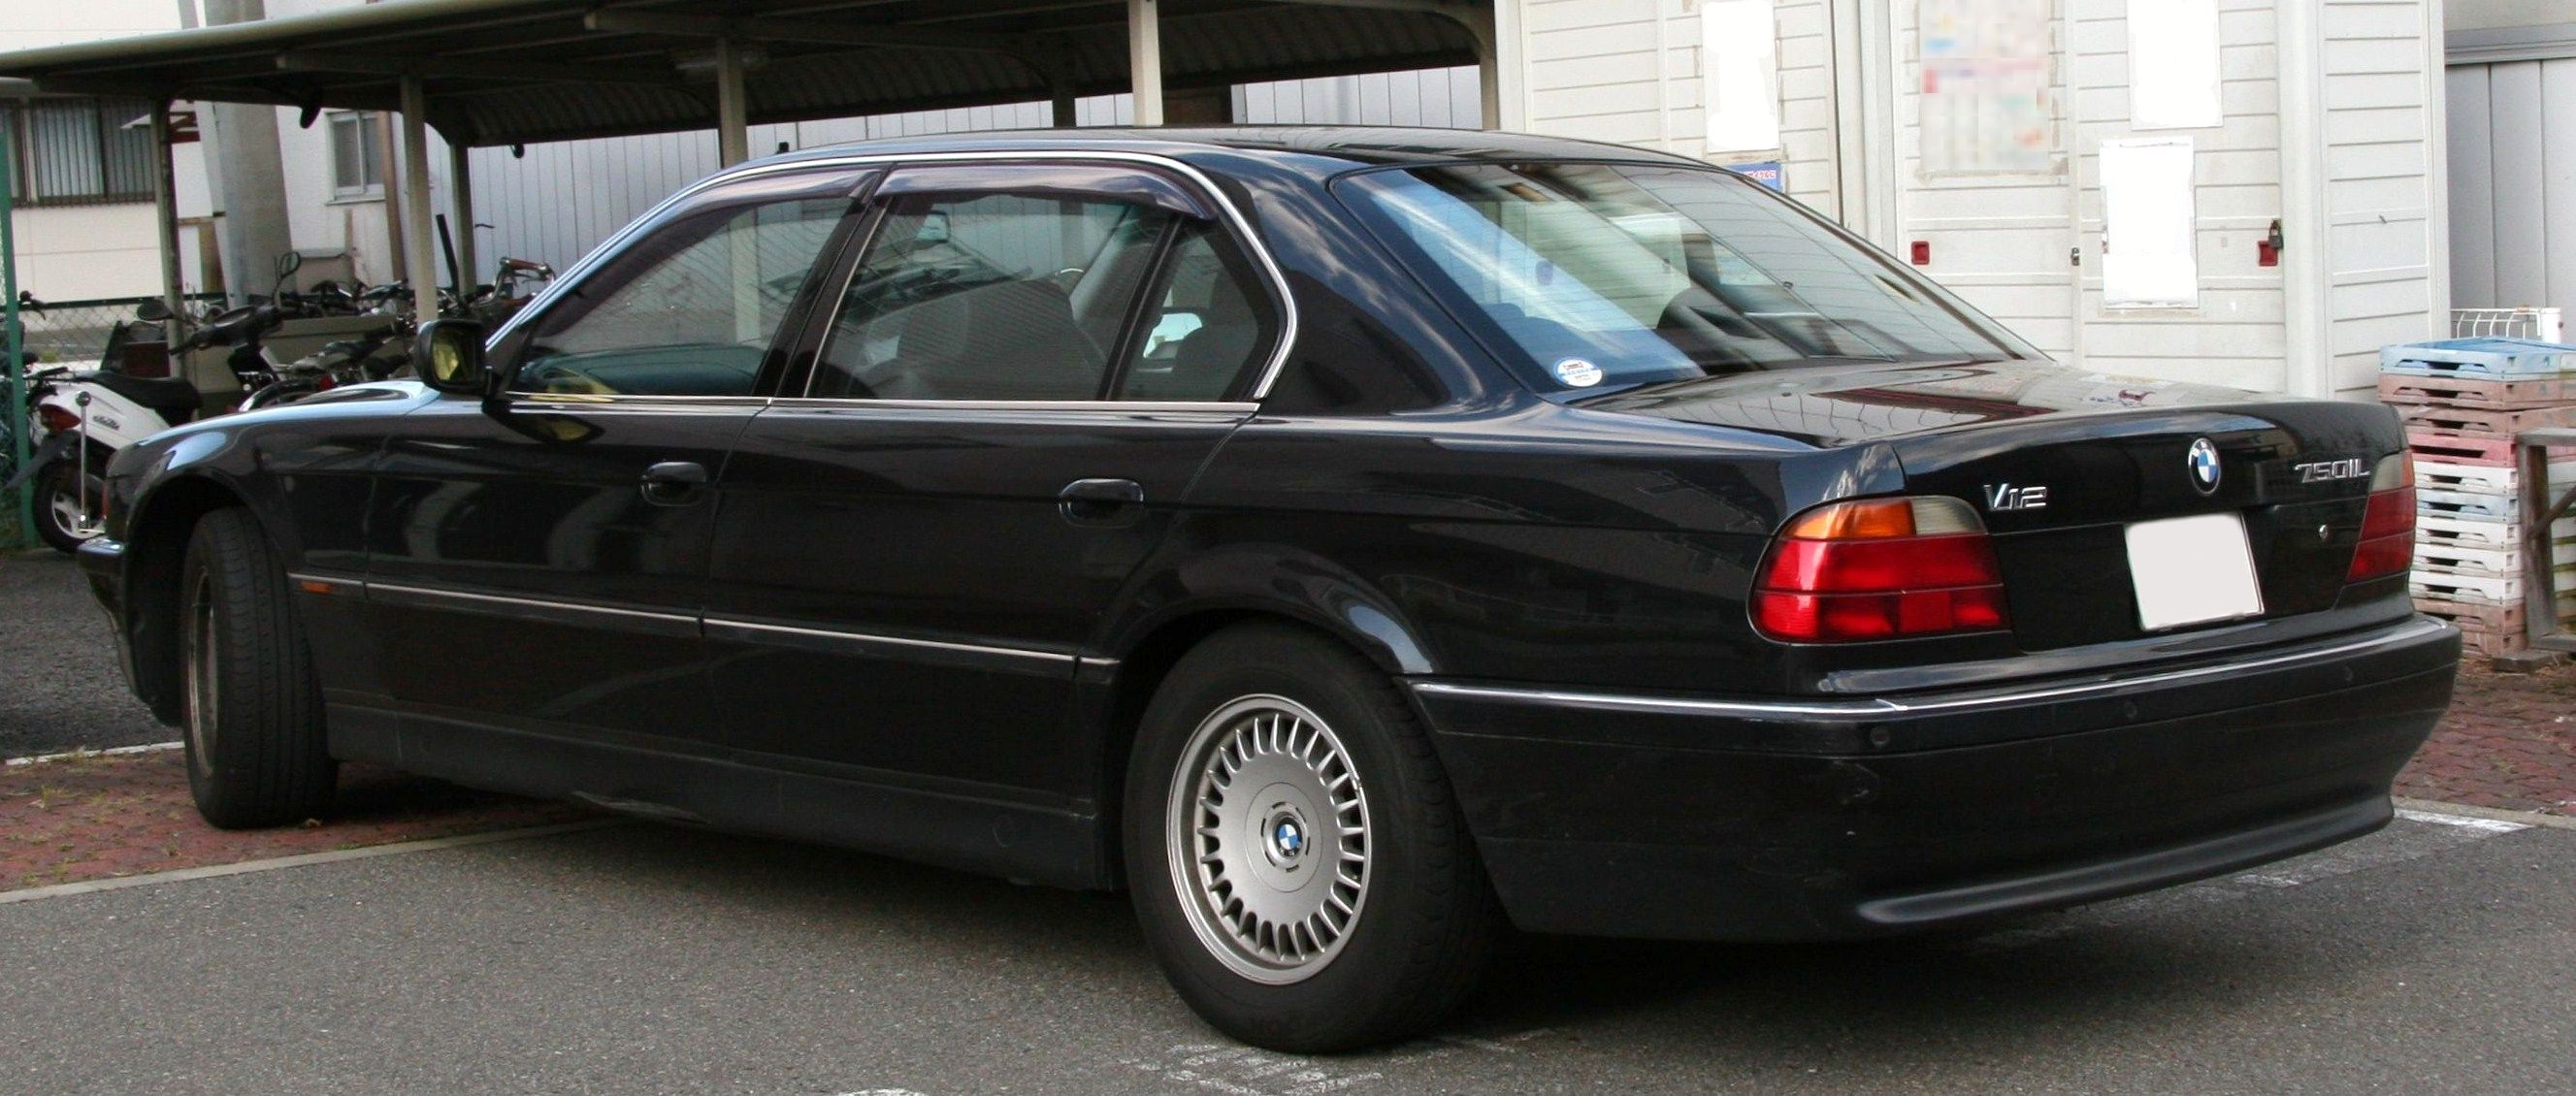 Bmw 750il photo - 1